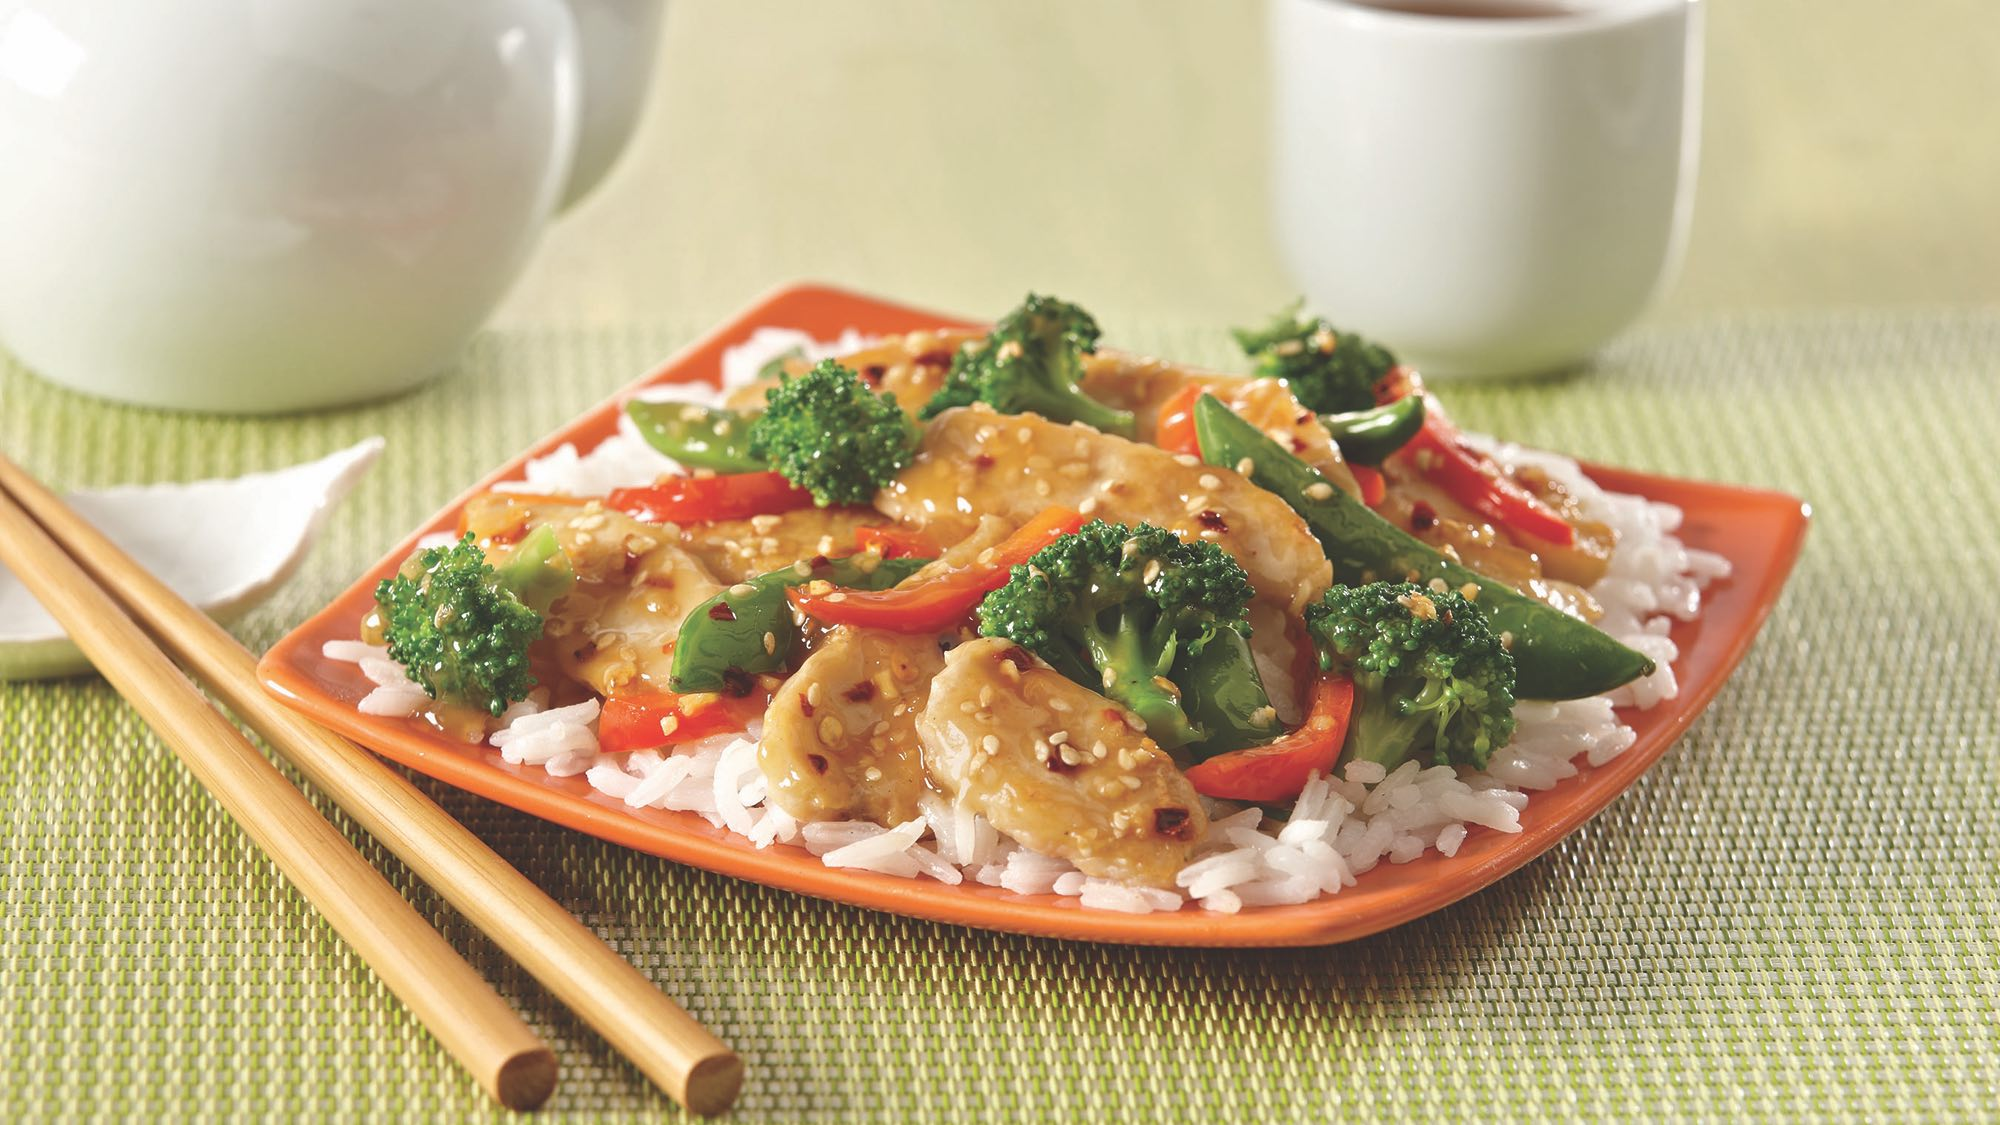 stir-fry-sesame-chicken-and-vegetables.jpg